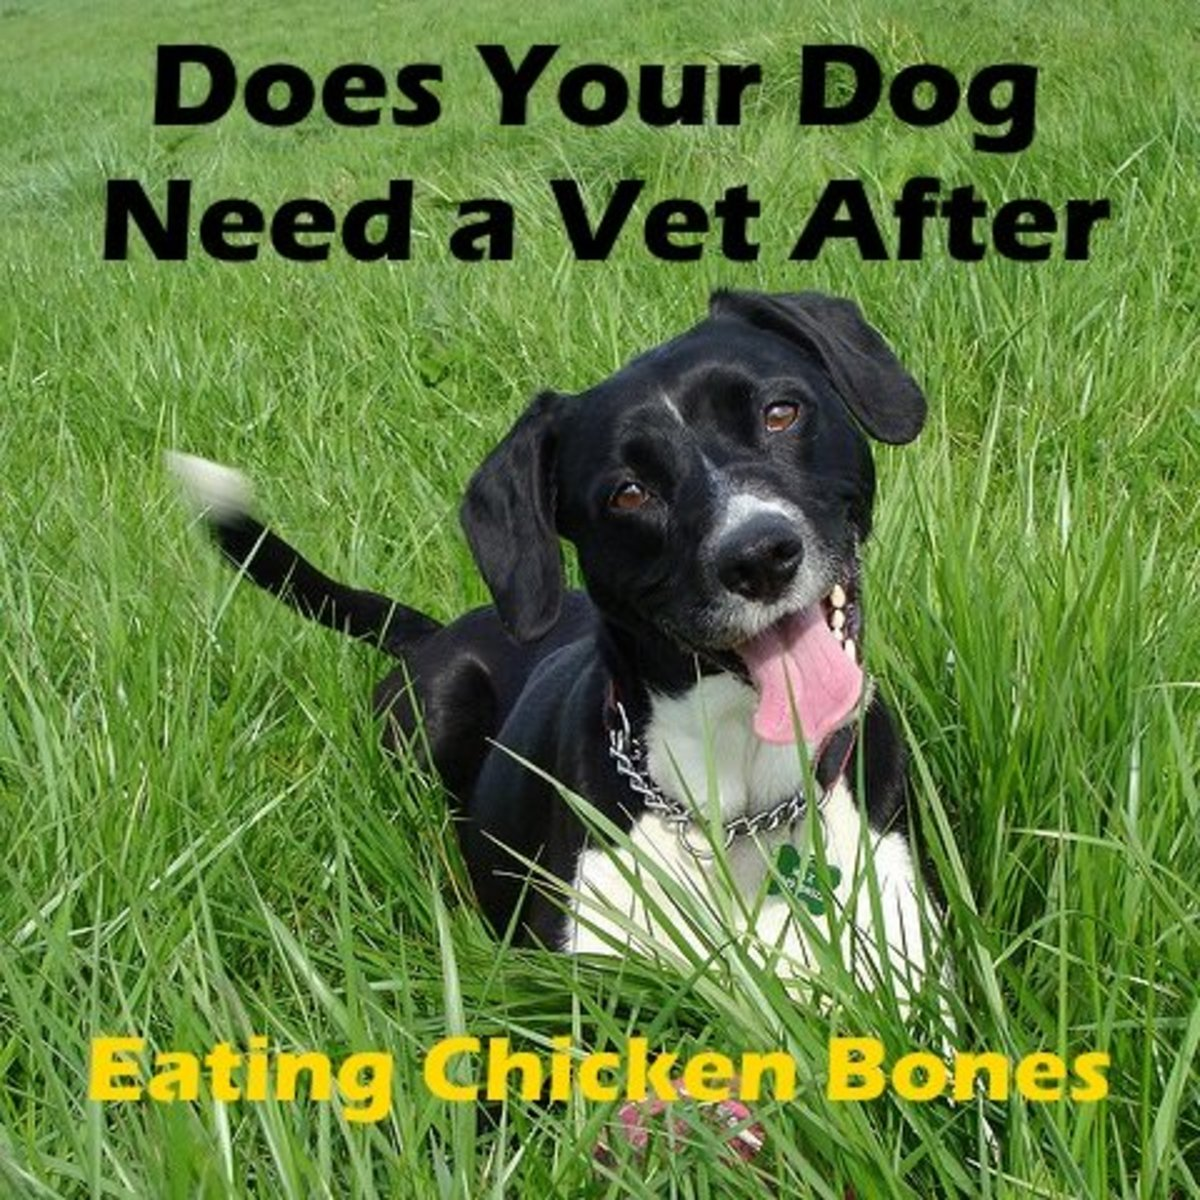 Does My Dog Need to Go to the Vet After Eating a Chicken Bone?